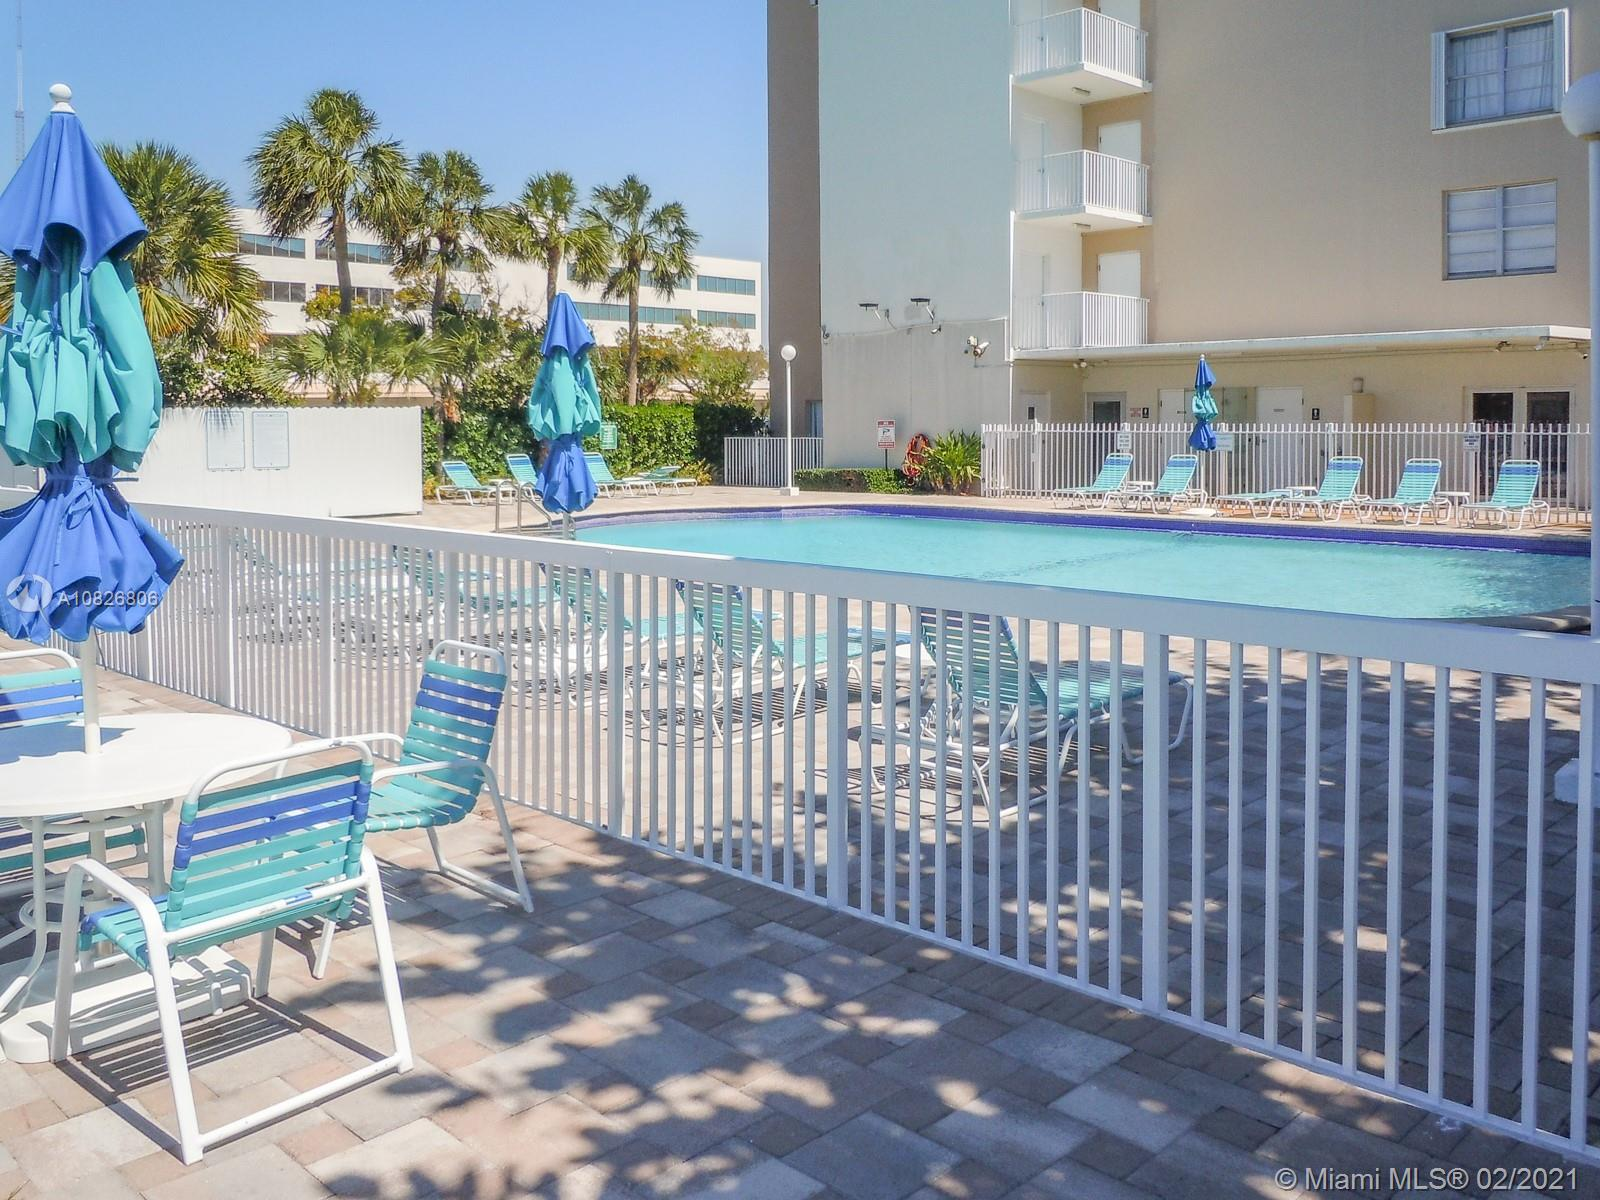 Island Place, 1455 N Treasure Dr Unit 7 D, North Bay Village, Florida 33141, image 43